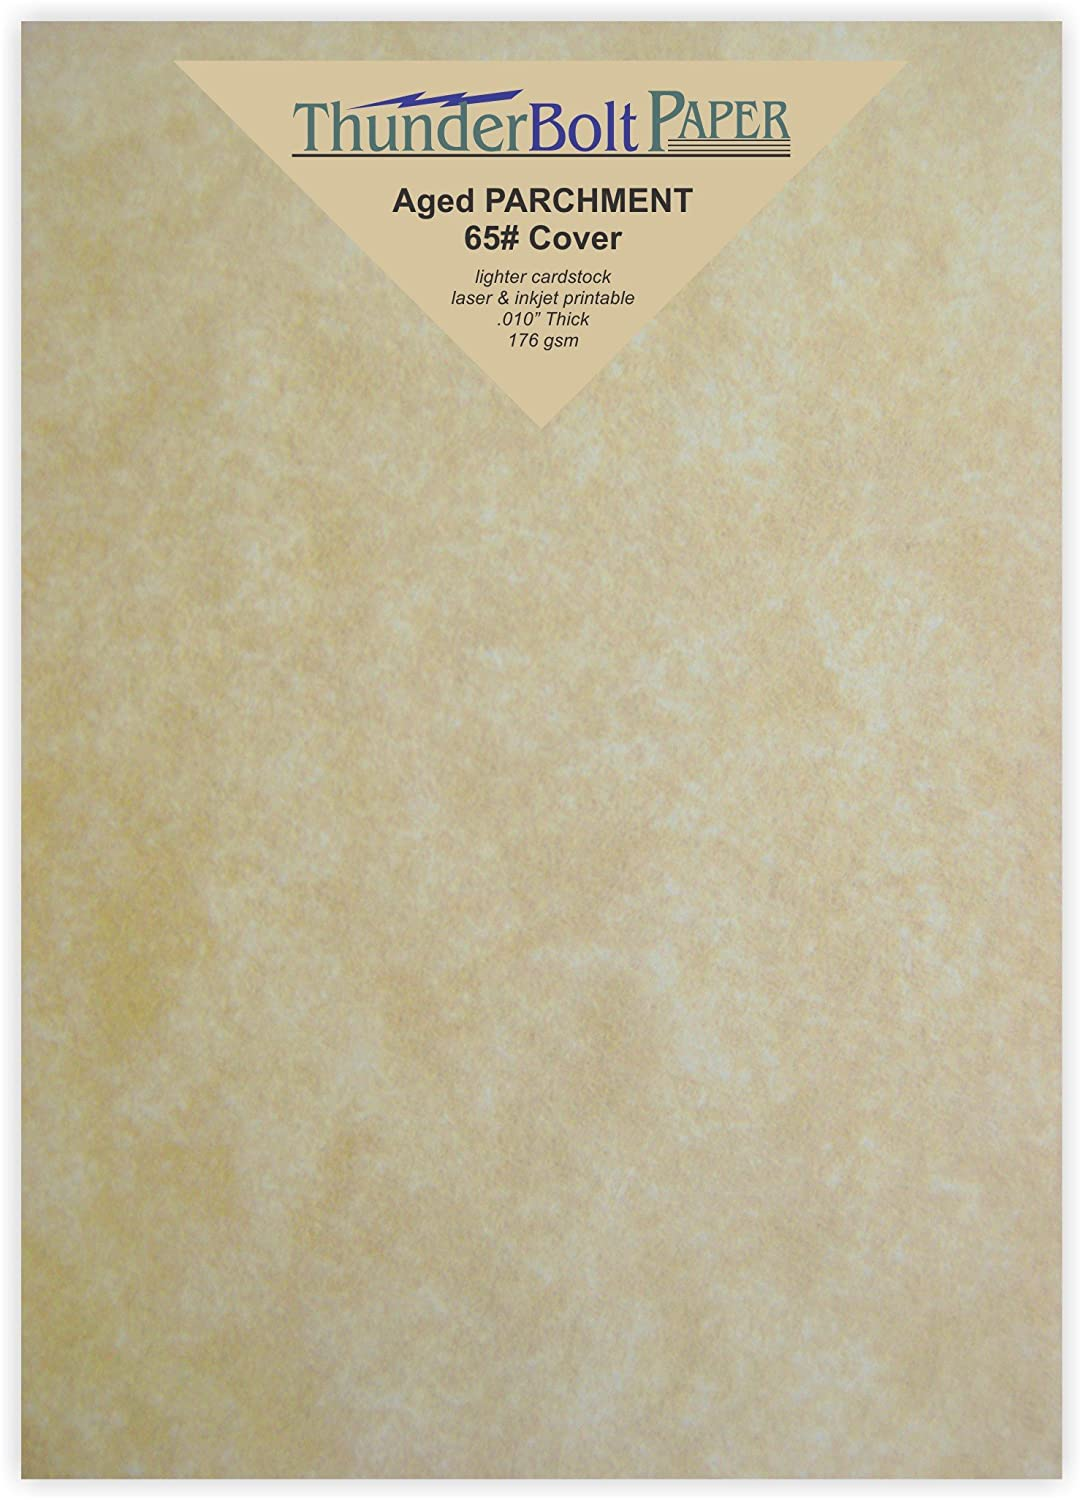 300 Old Age Parchment 65lb Cover Paper Sheets 5X7 Inches Cardstock Weight Colored Sheets 5